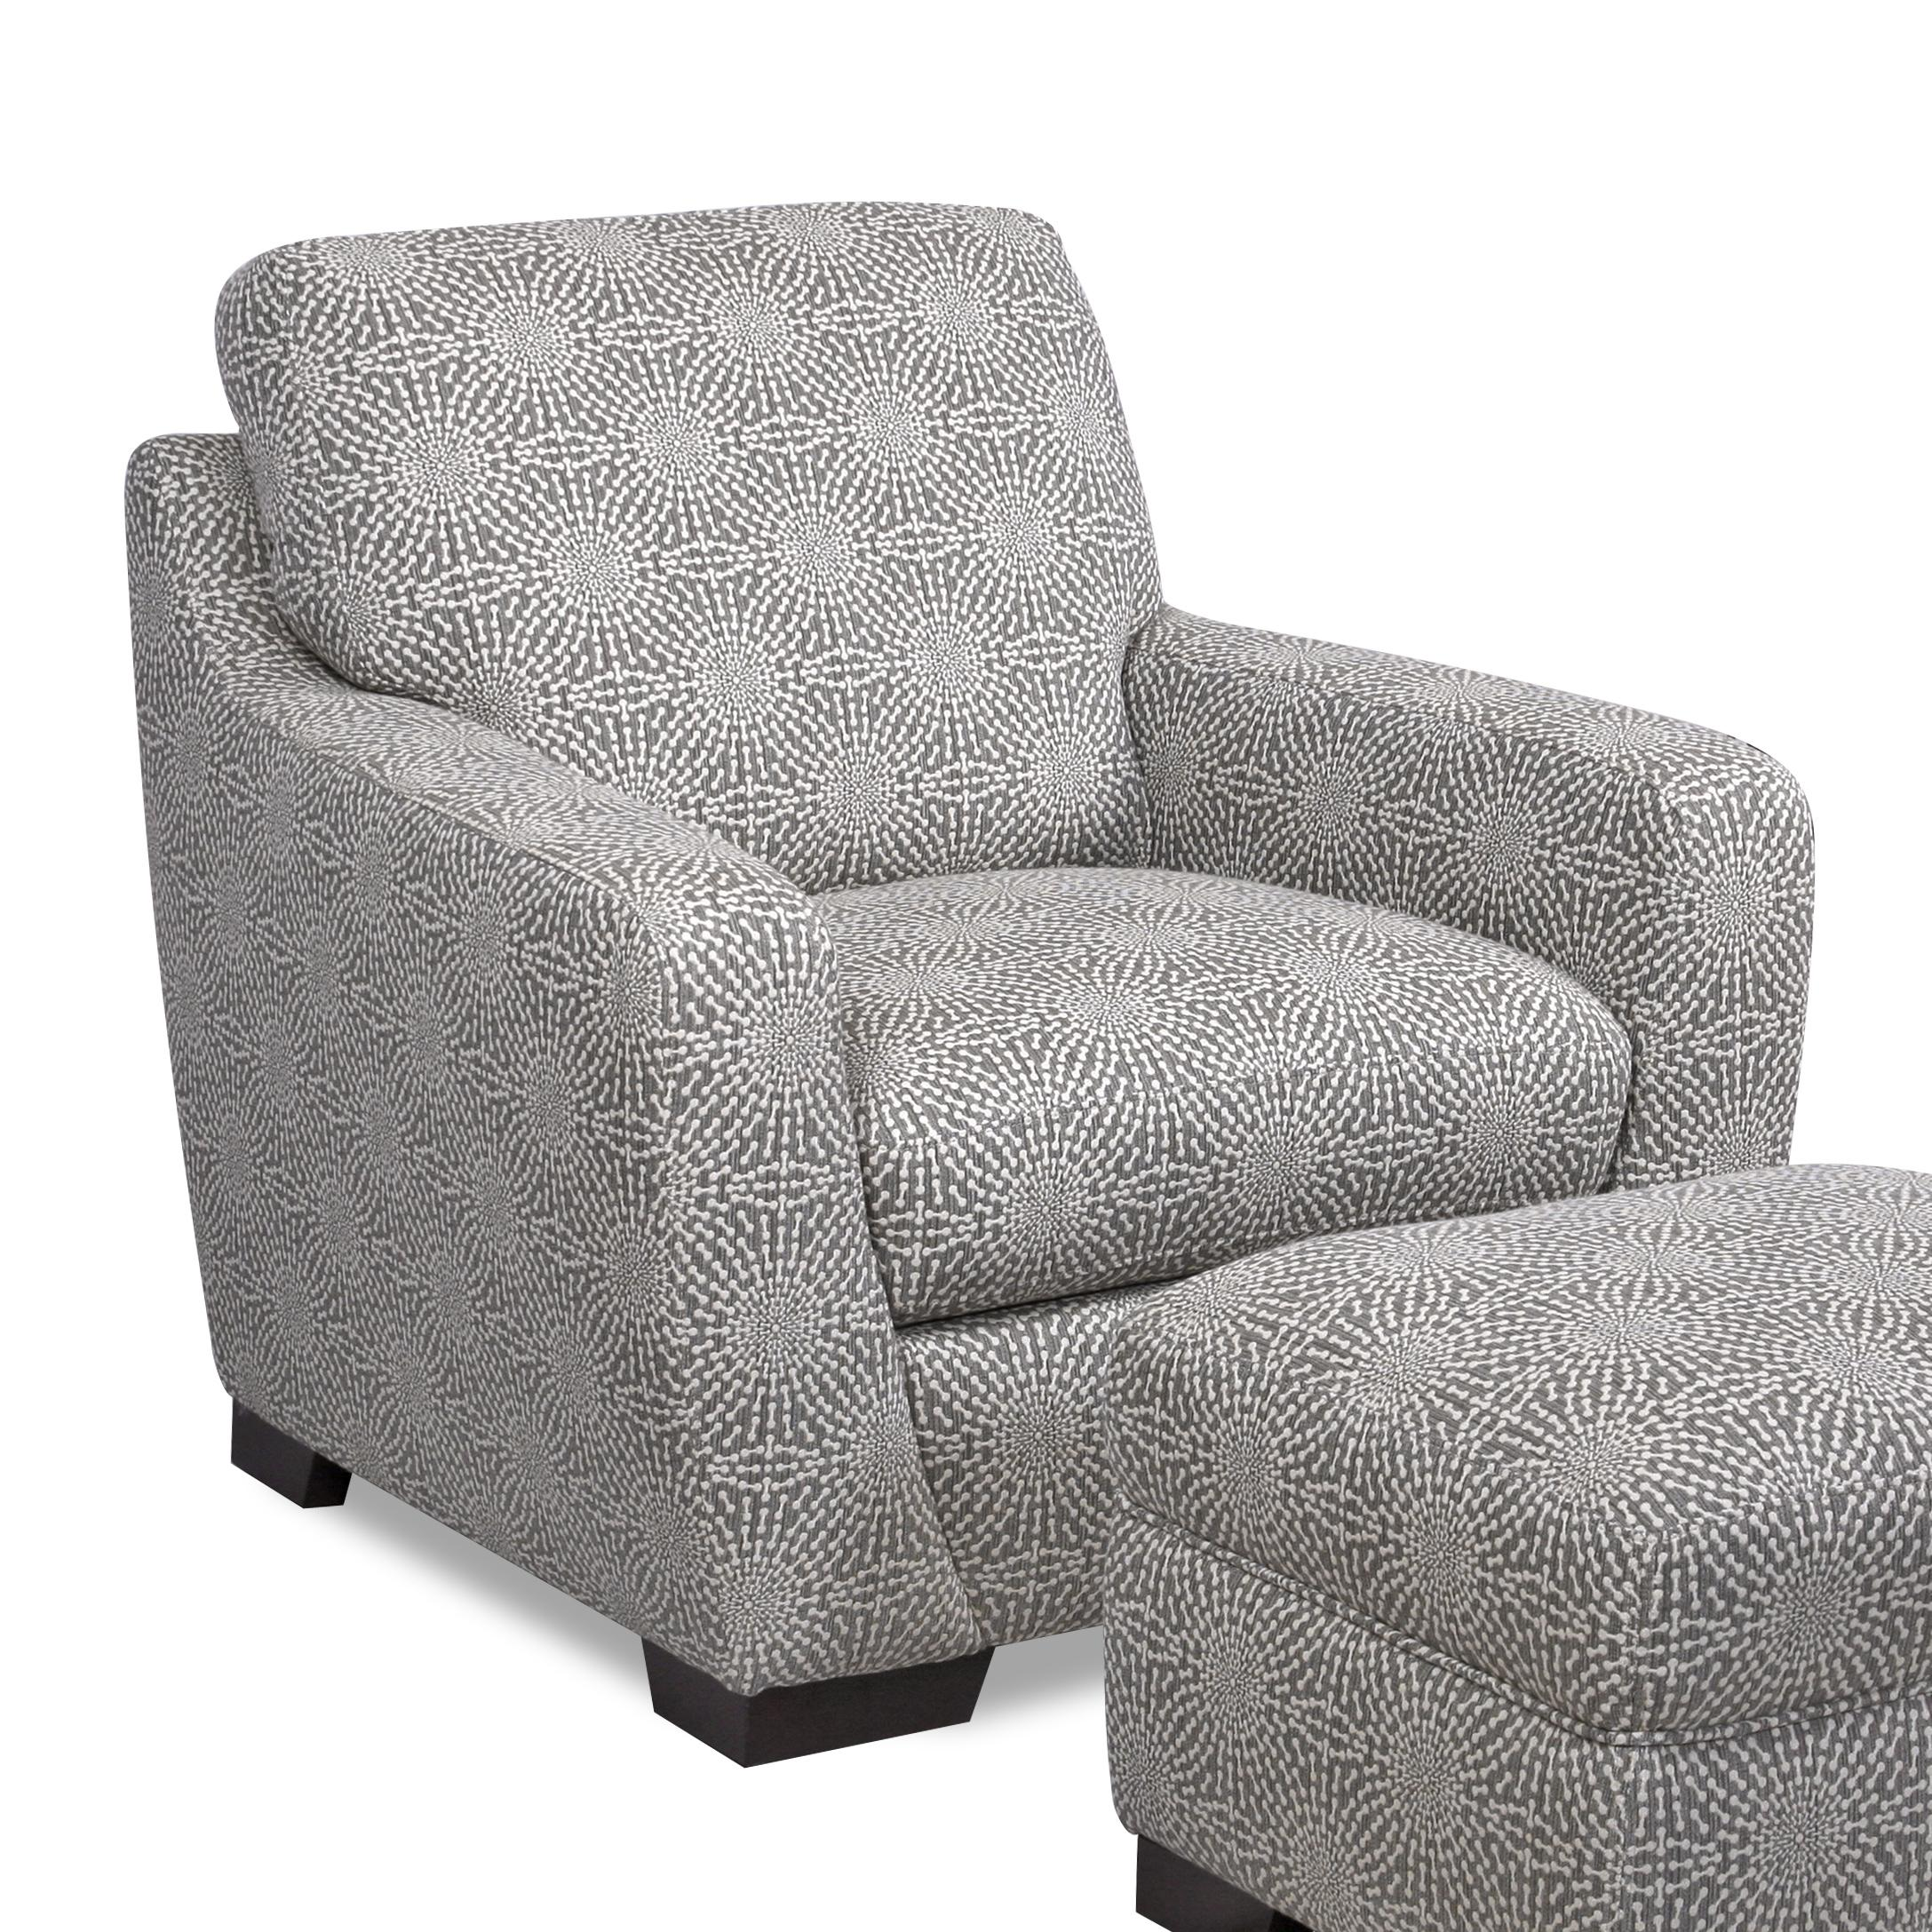 6948 Upholstered Accent Chair by Simon Li at Dean Bosler's